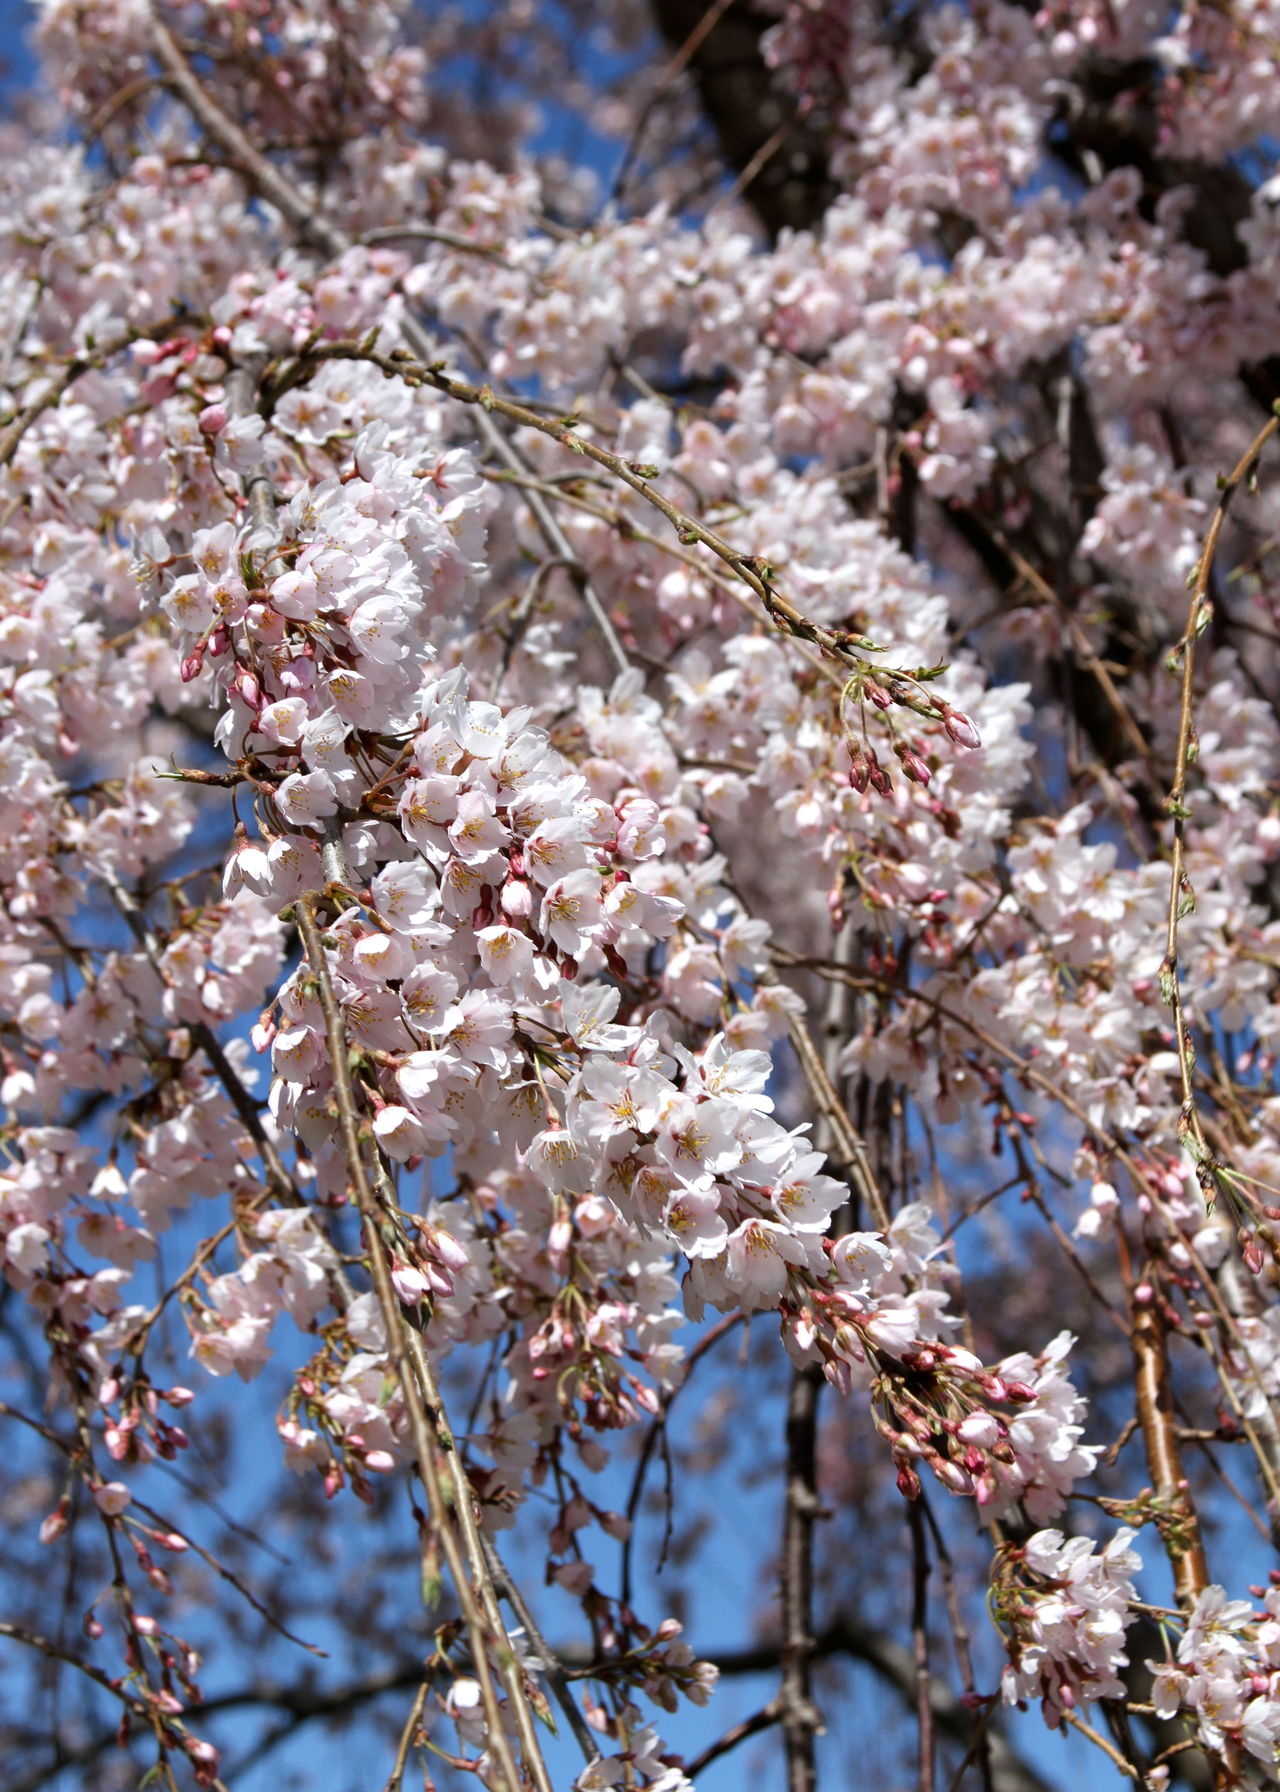 Beauty In Nature Blossom Branch Cherry Blossom Cherry Tree Close-up Day Flower Flower Head Fragility Freshness Growth In Bloom Nature No People Outdoors Pink Color Springtime Sunlight Tree Weeping Cherry Tree